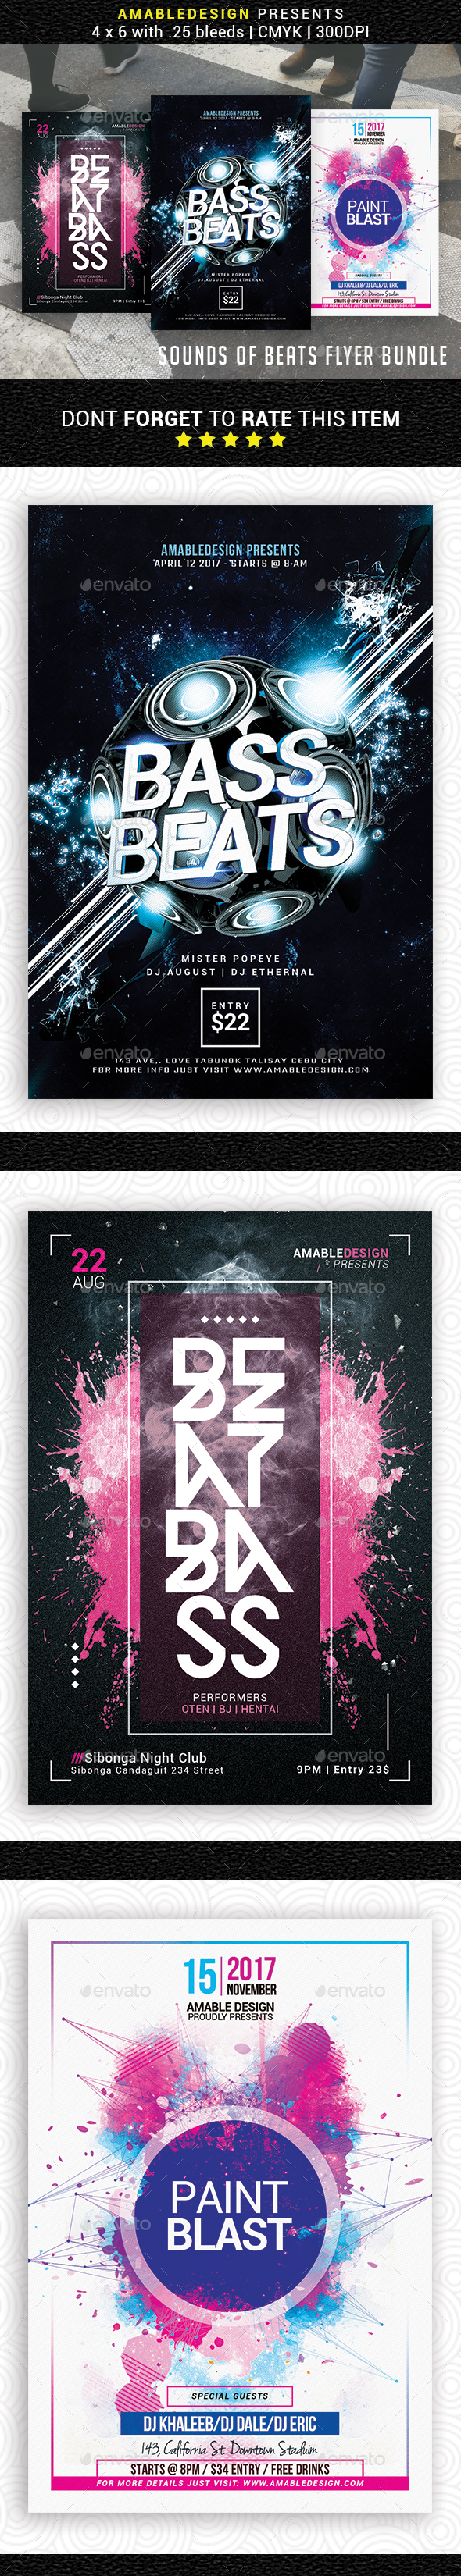 3 in 1 Sounds of Beats Flyer/Poster Bundle - Clubs & Parties Events